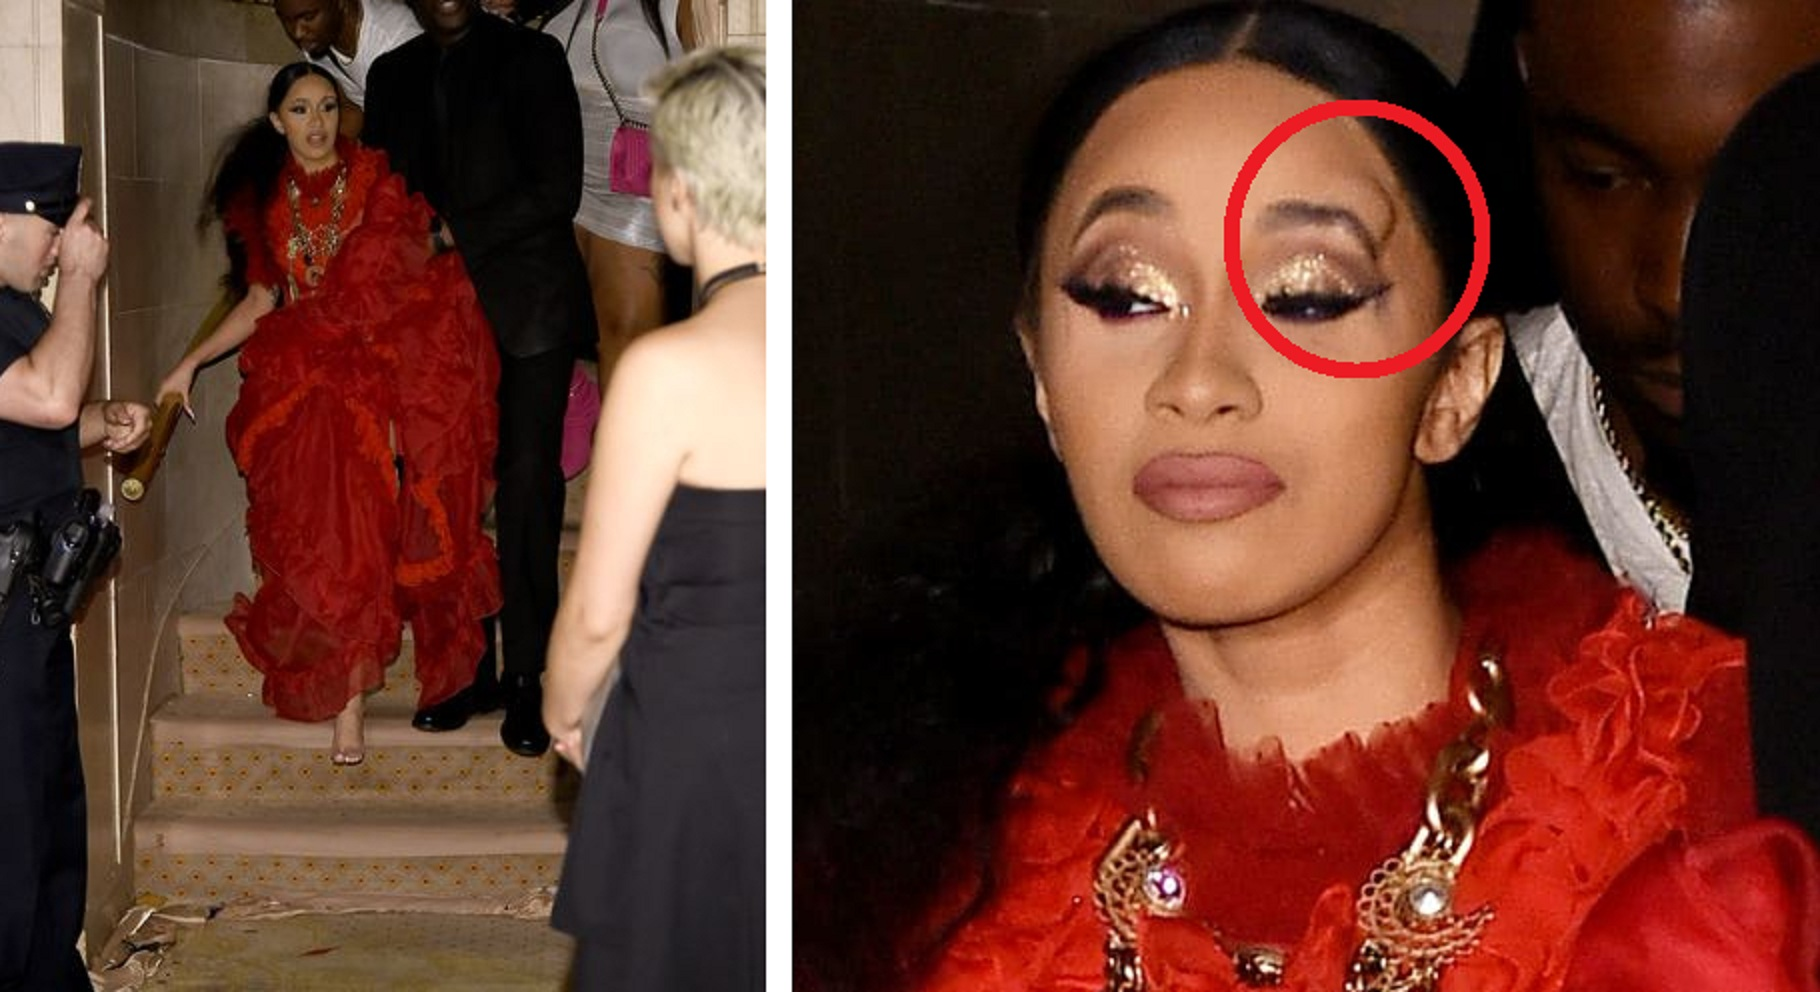 Cardi B threw her shoe at Nicki Minaj as the two get into MAJOR fight at Plaza Hotel.